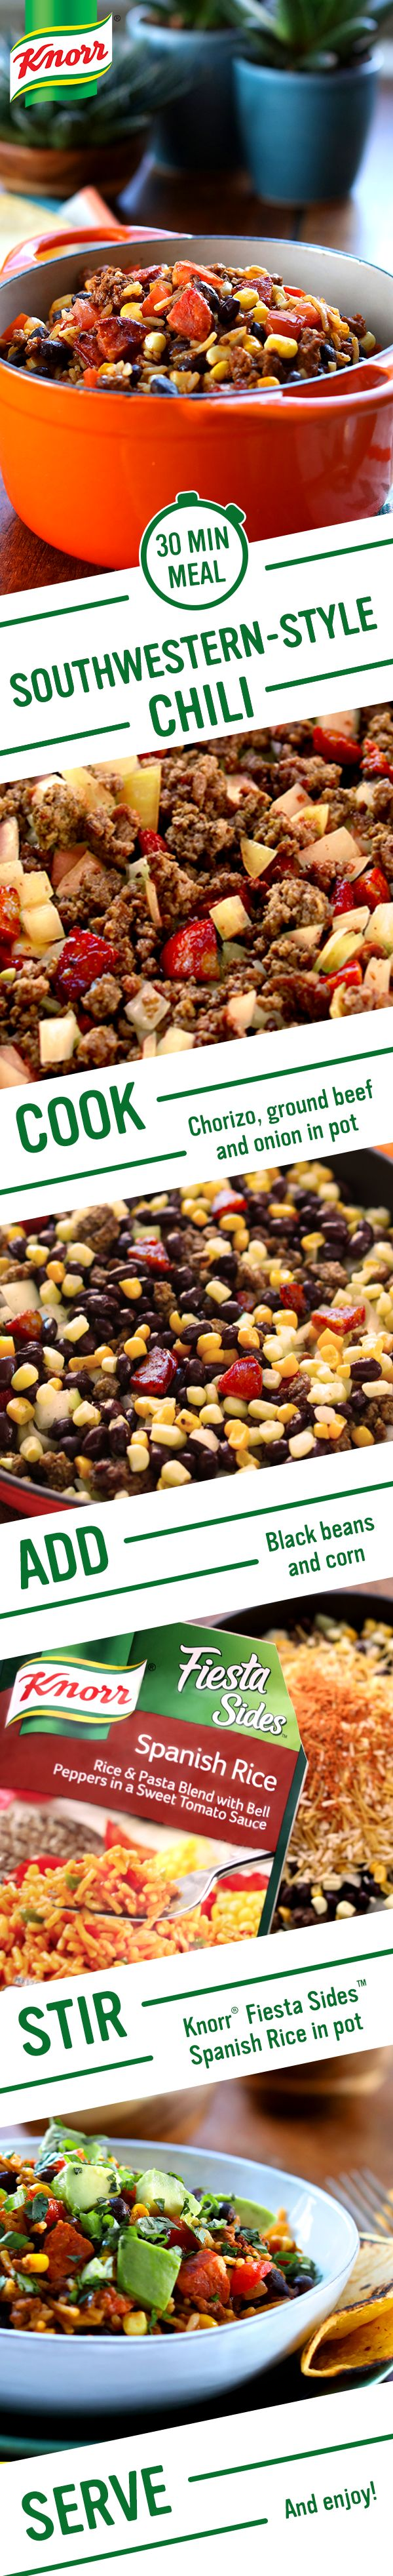 ... beef, & onion in one pot 2. Add black beans & corn 3. Stir in Knorr